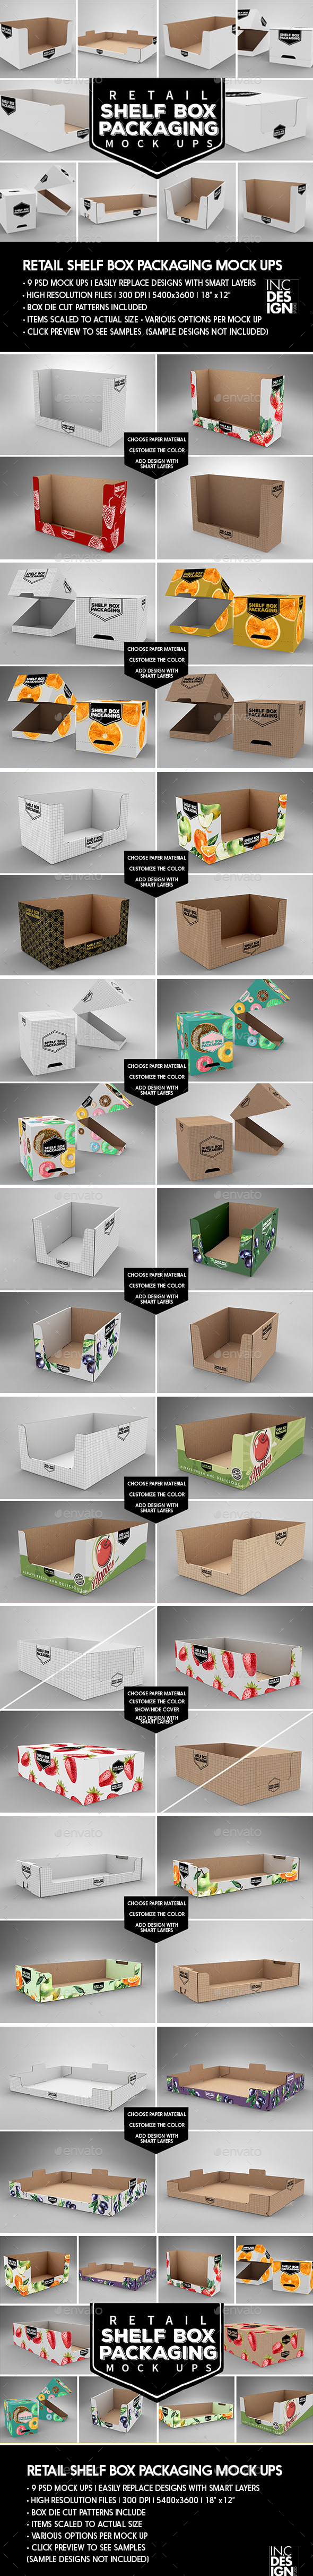 Retail Shelf Box Packaging MockUps